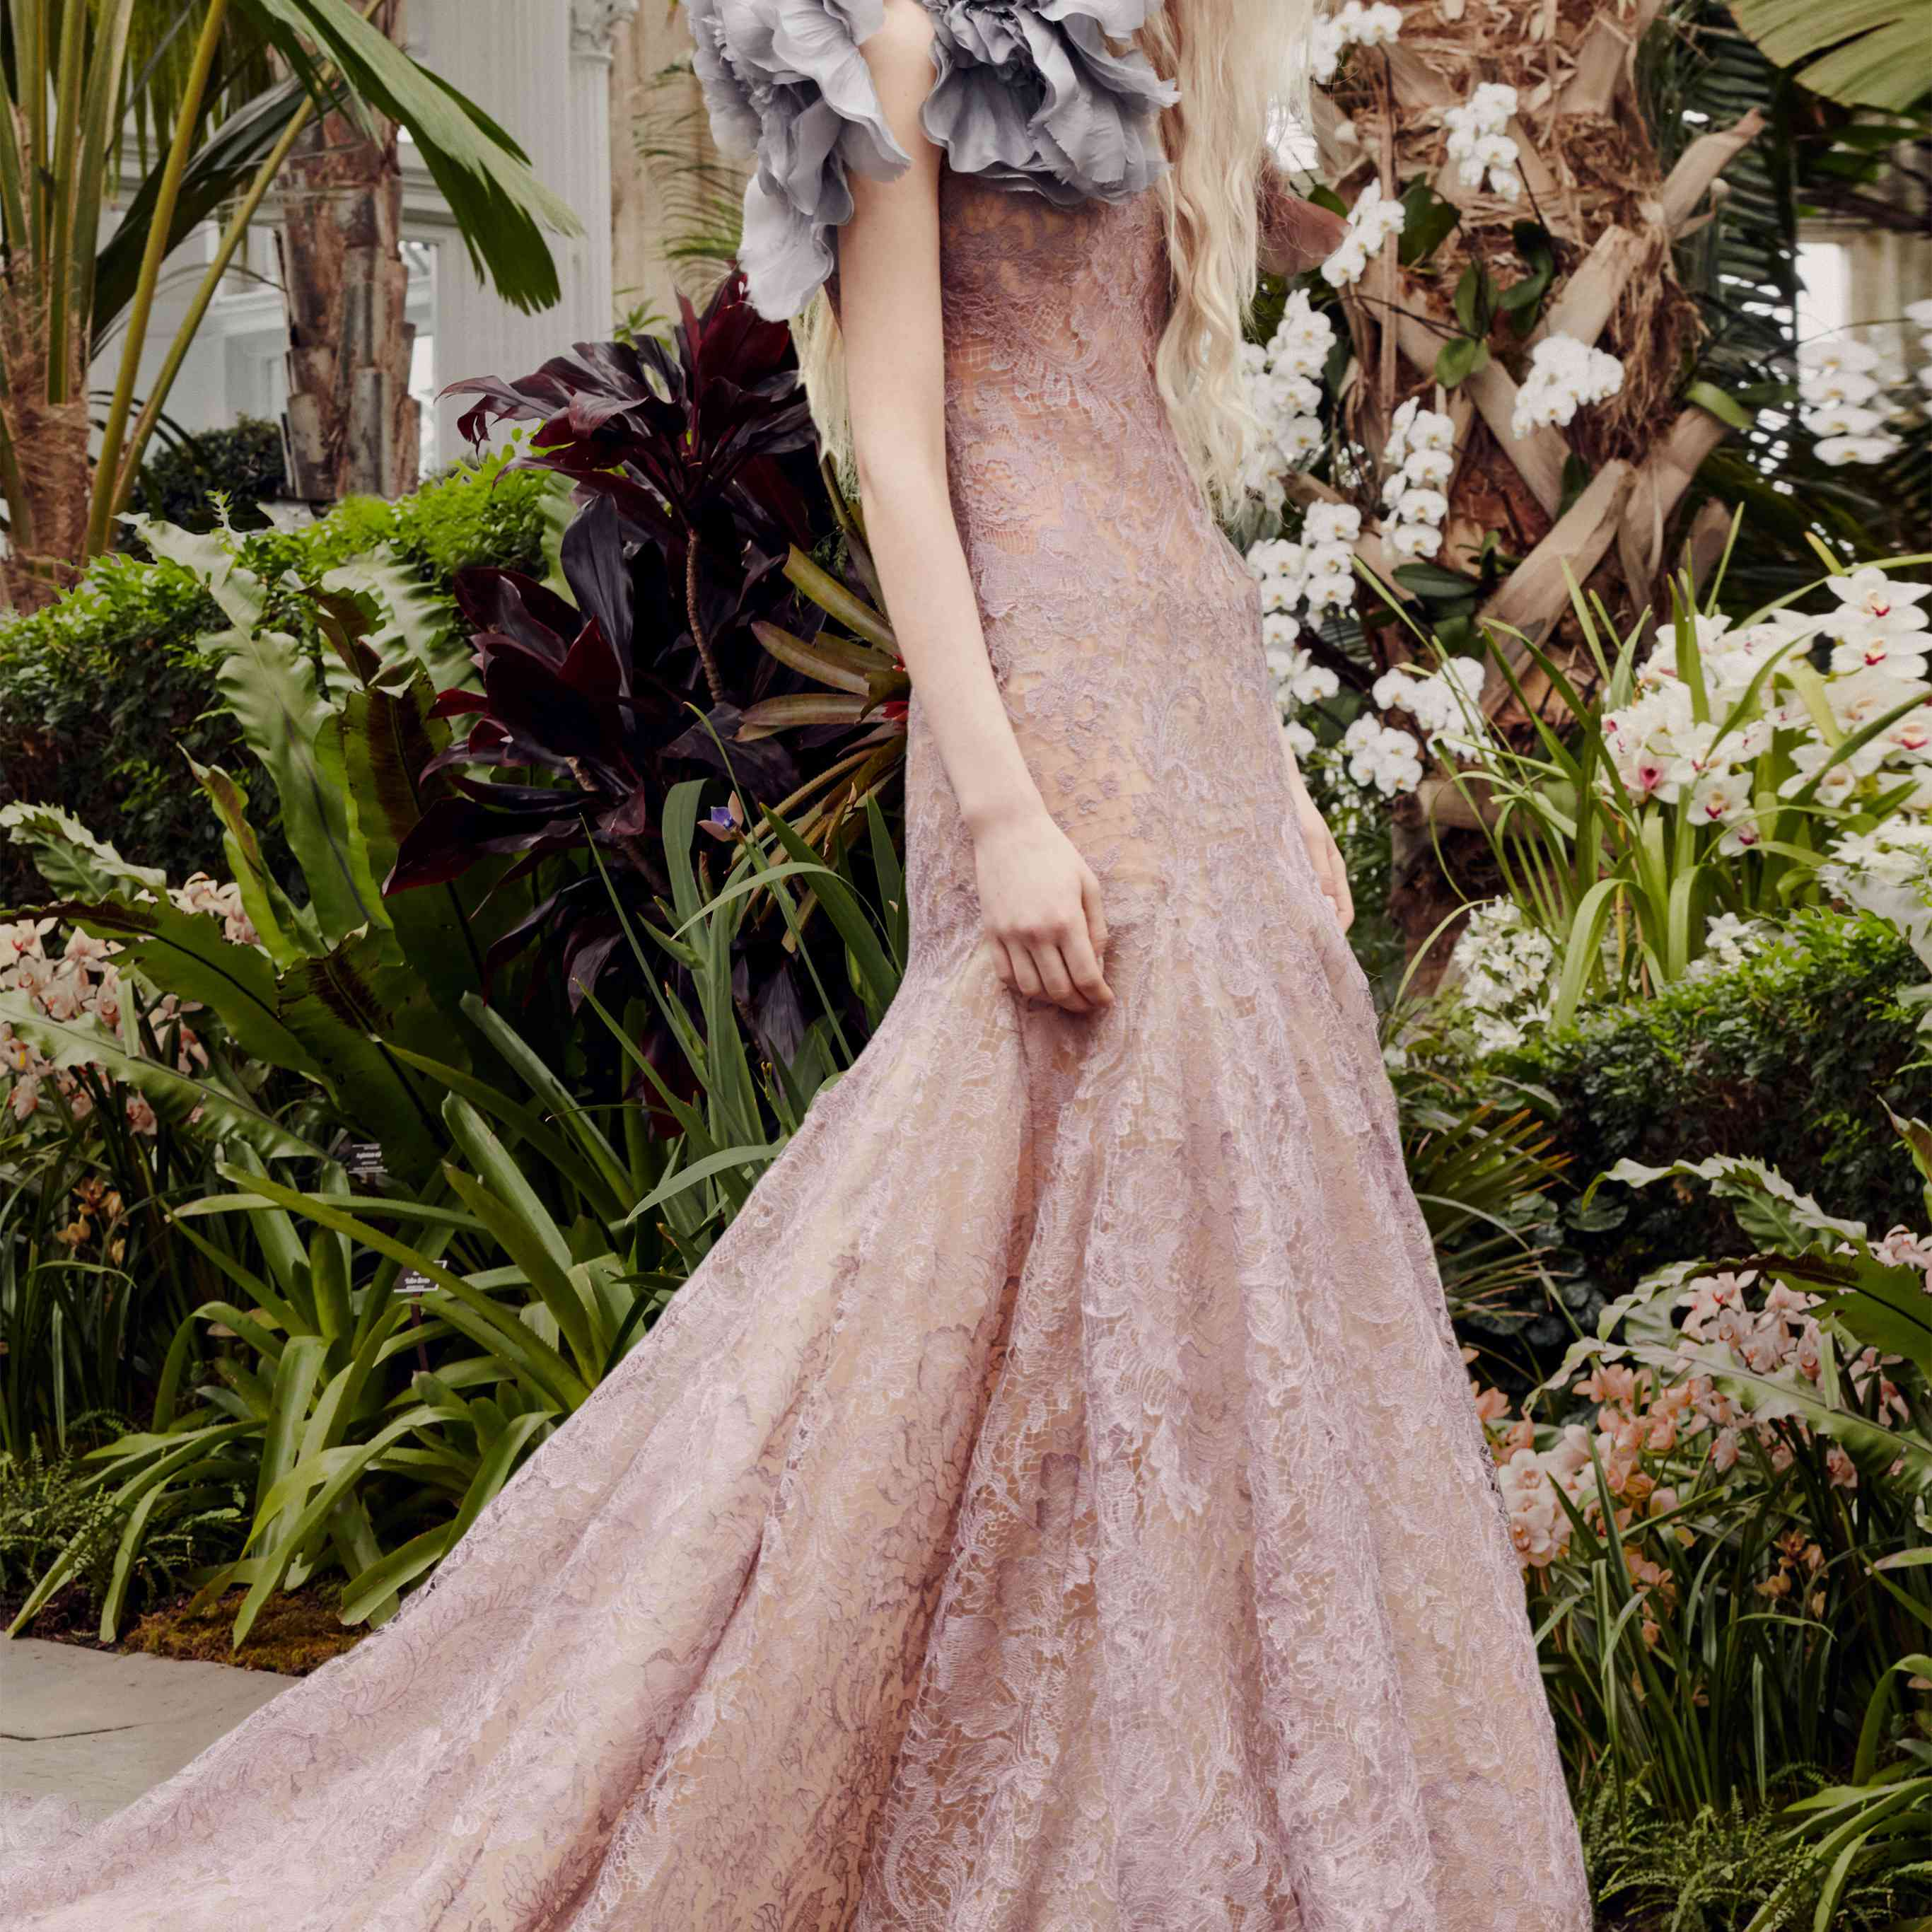 Model in a pink lace mermaid gown with a gray flower accent at the shoulder